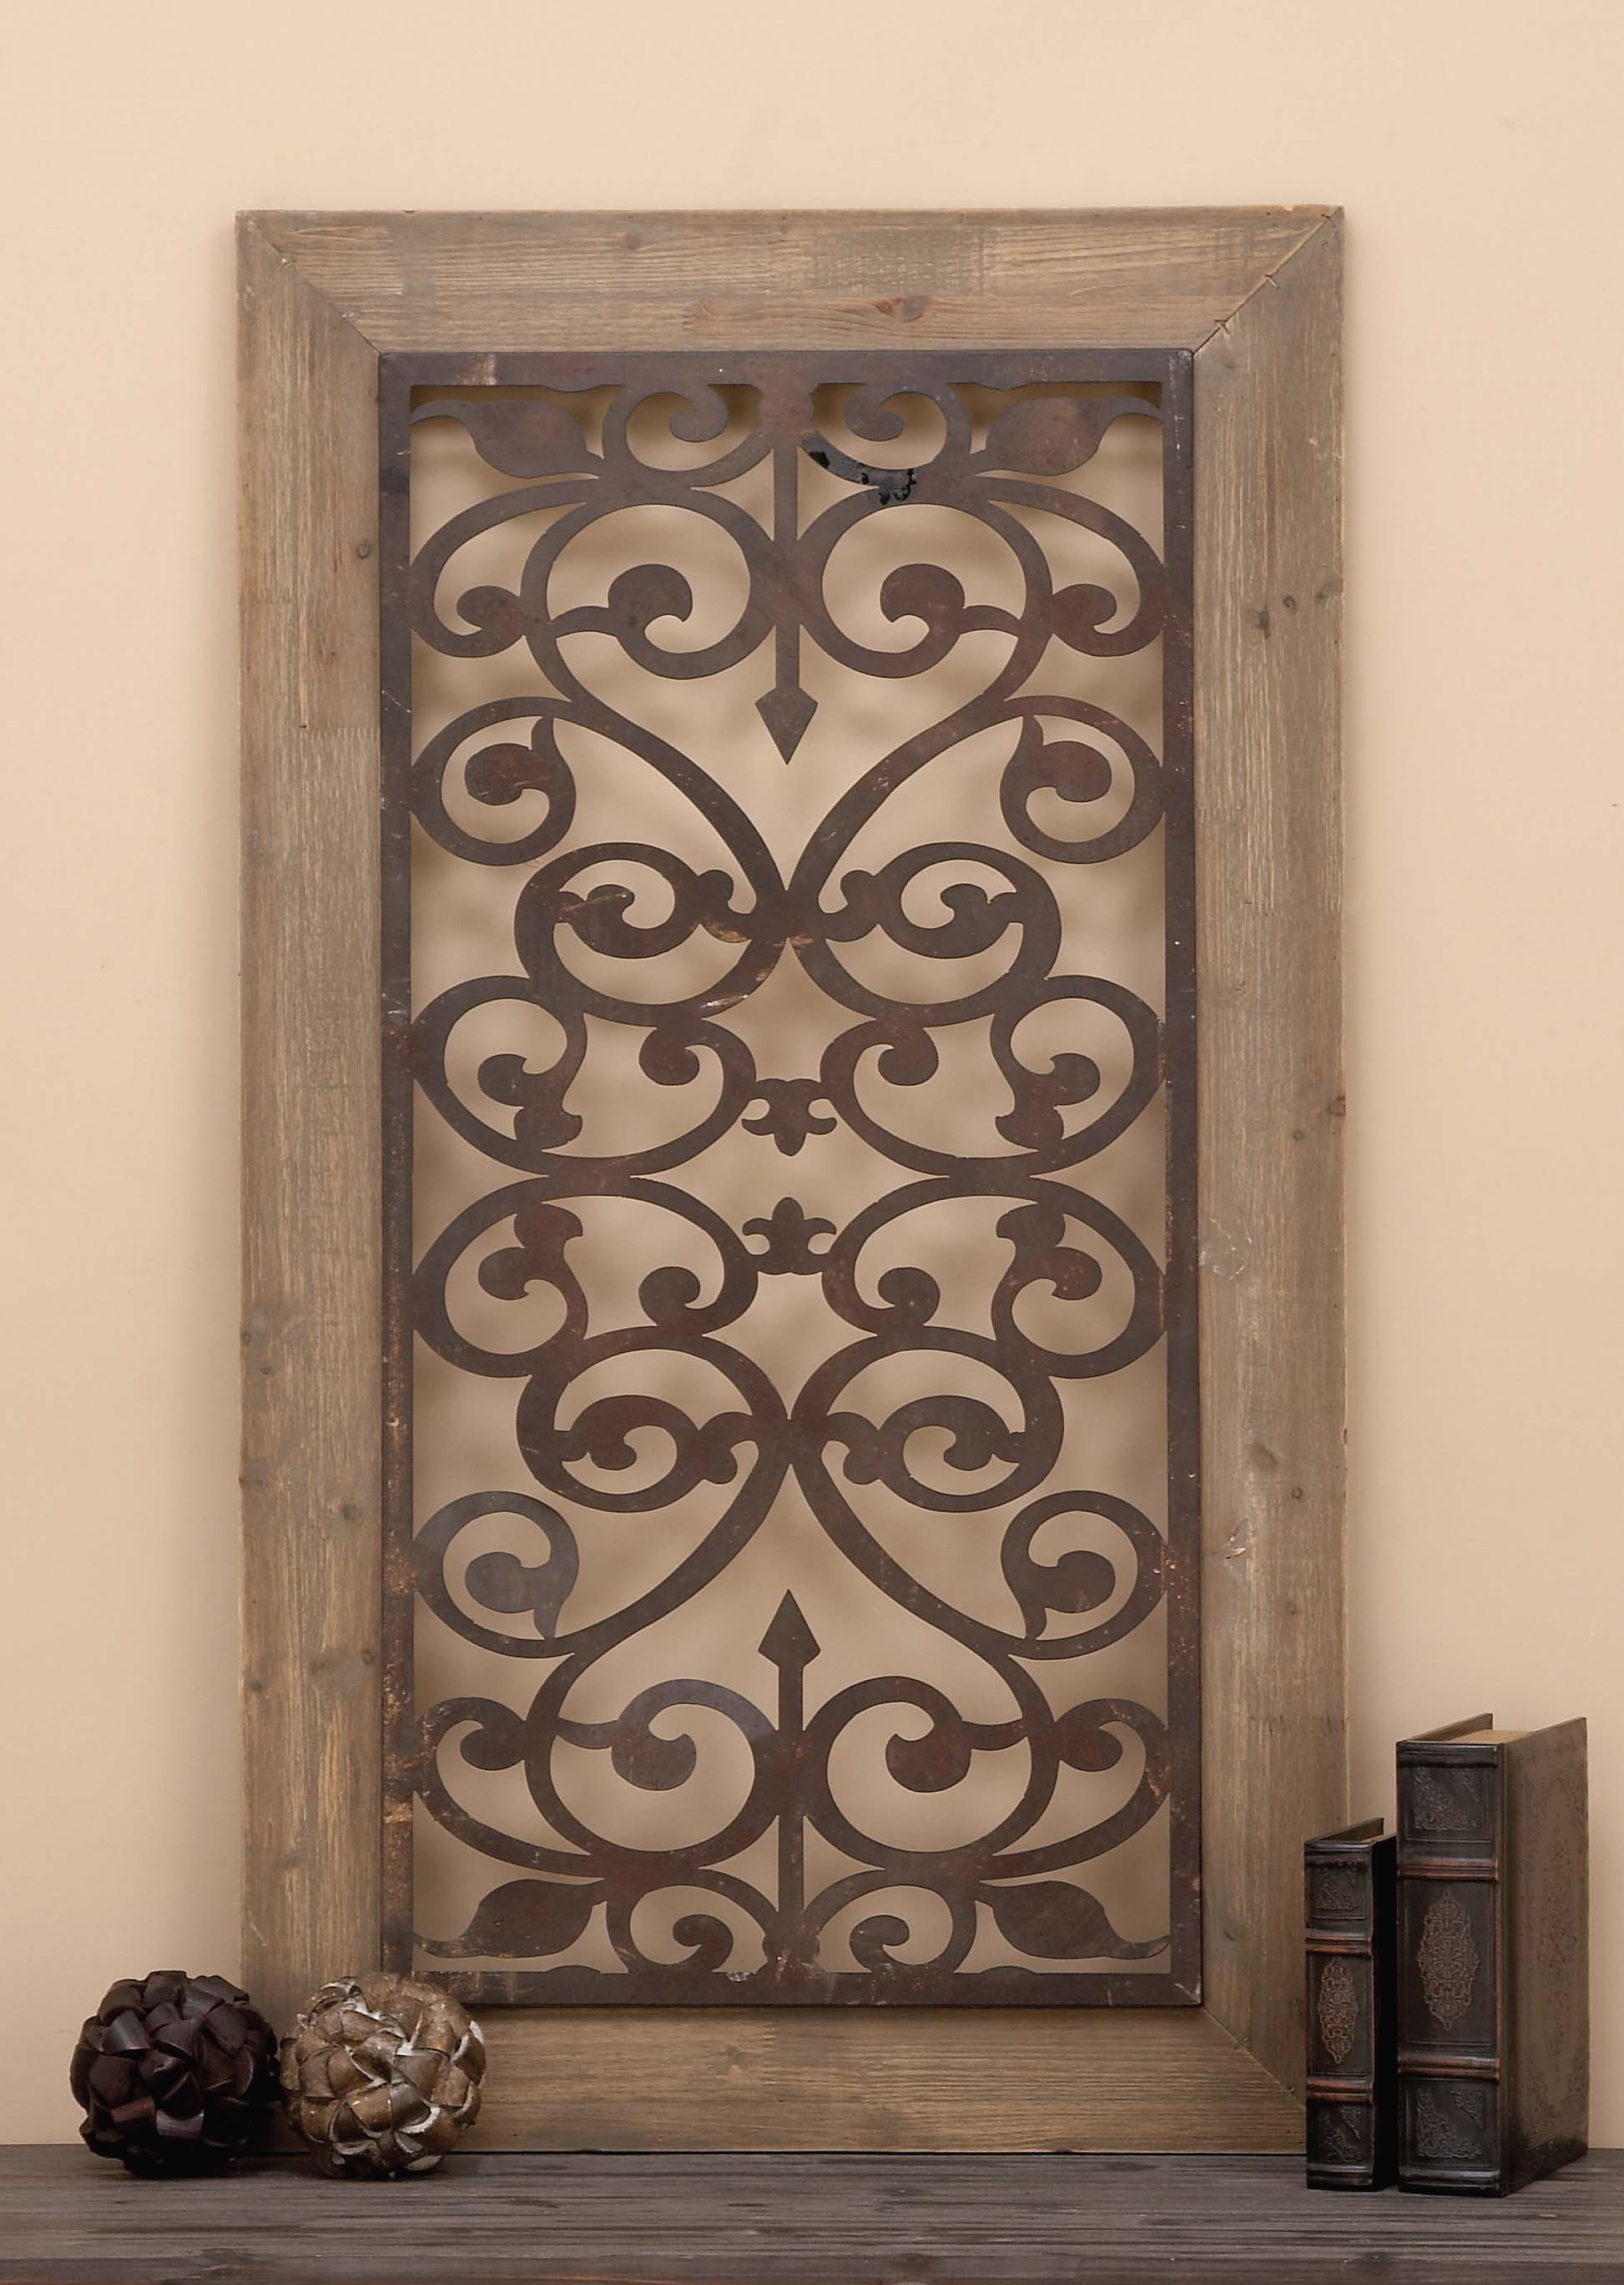 Garden style wall plaque with scrolling ironwork